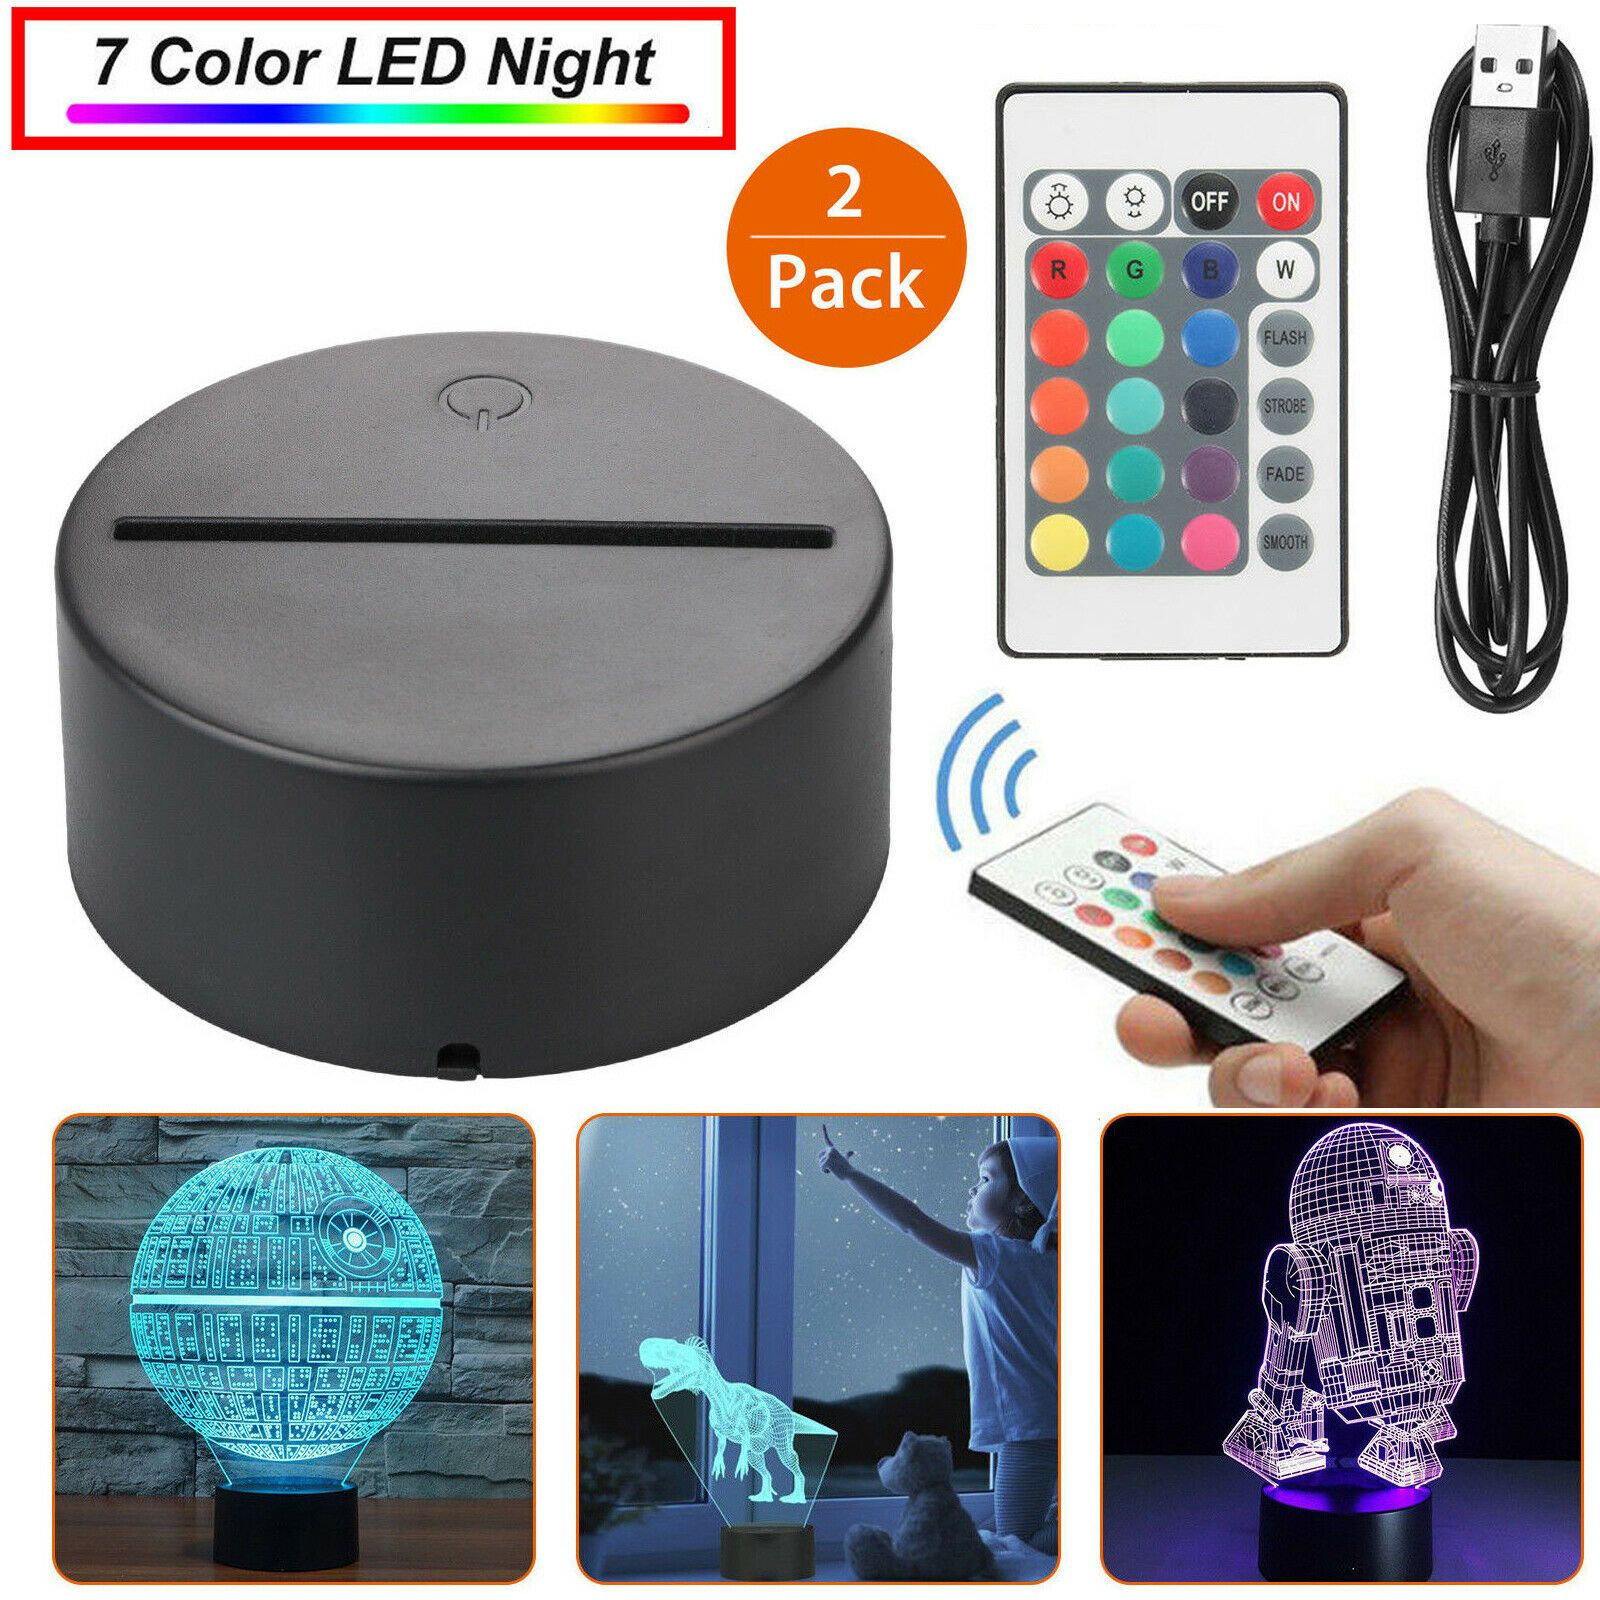 Details About 1 2x Led Lamp Base 3d Night Light Acrylic Plate Panel Holder Remote Usb Cable In 2020 3d Night Light Lamp Bases Night Light